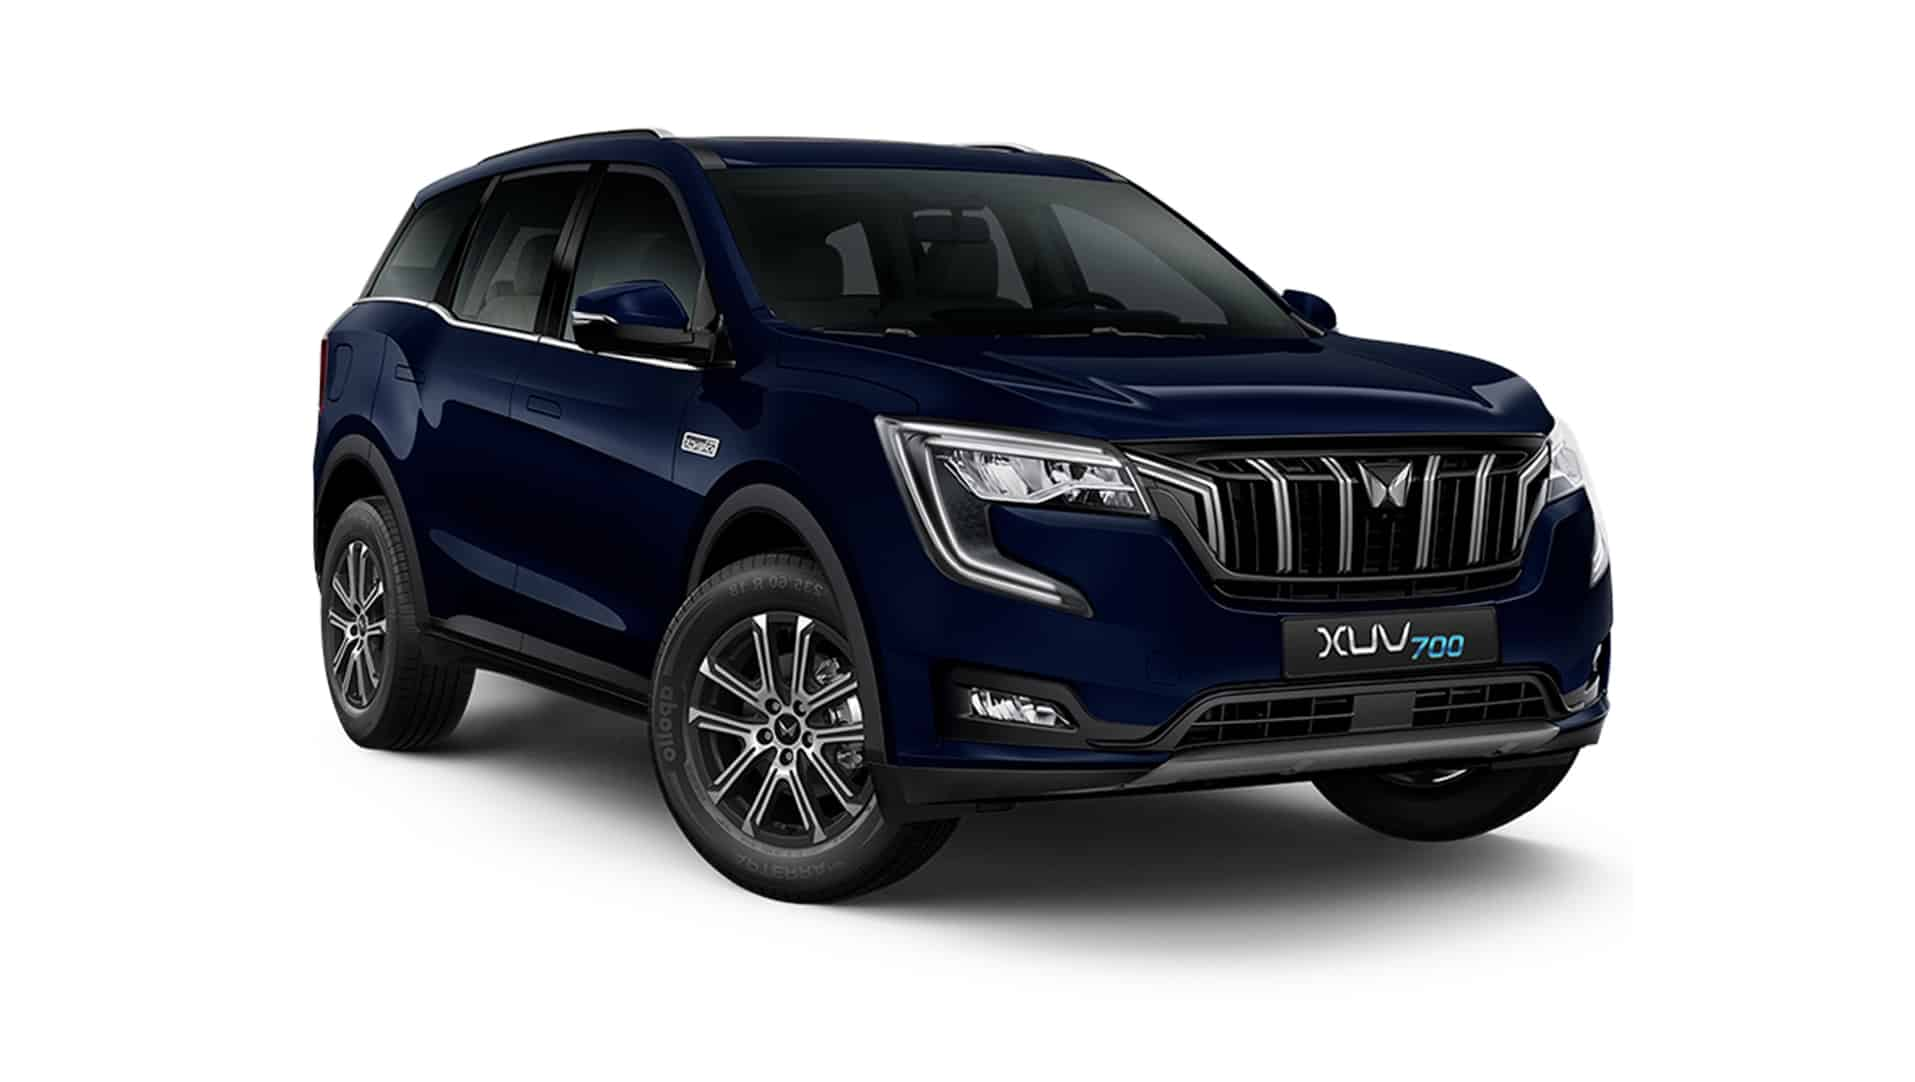 Mahindra XUV700 variant details revealed - Launch could happen on October 2